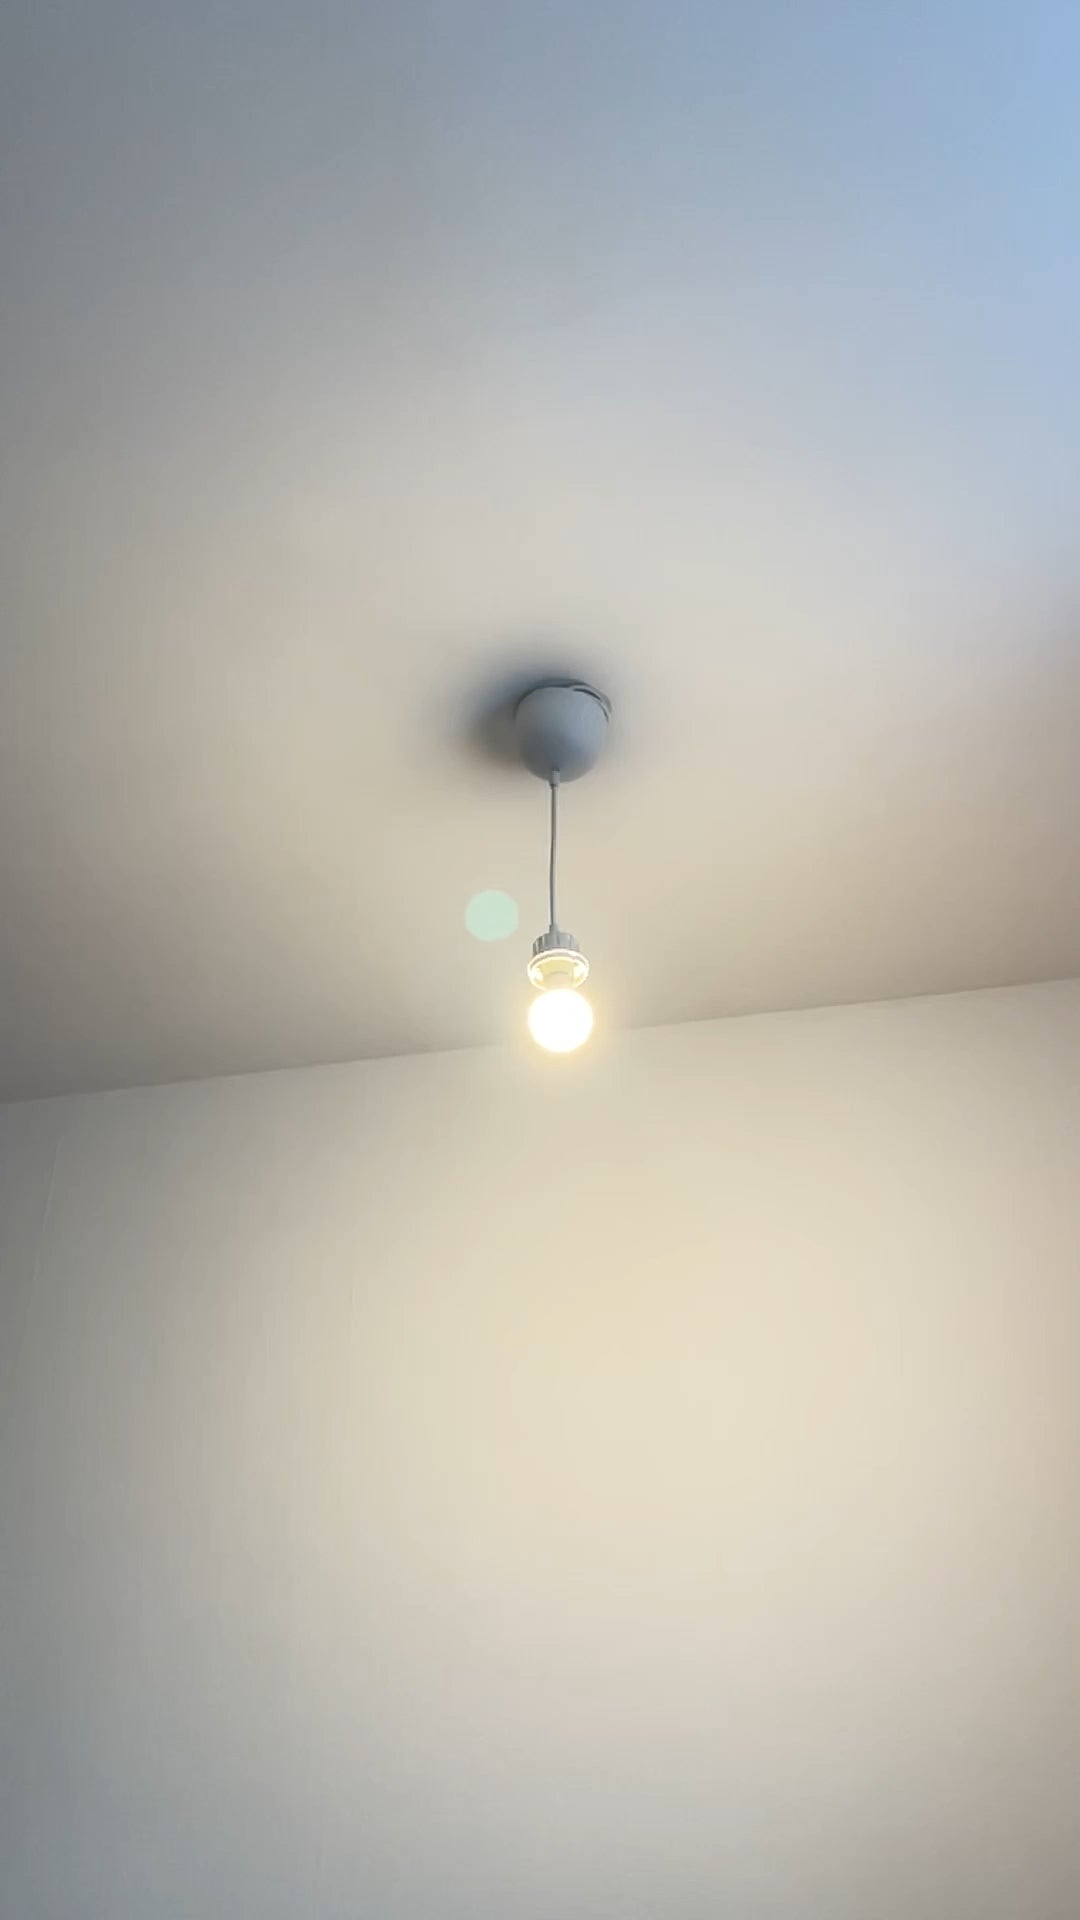 [EPILEPSY WARNING: Rapid Flickering] Nanoleaf Essentials Flashing Bulb visible at 60+ fps (not visible at 30 and below).  Is it normal for other LED bulbs?  I also experienced eye fatigue that was not present with the IKEA LED bulb I had before.